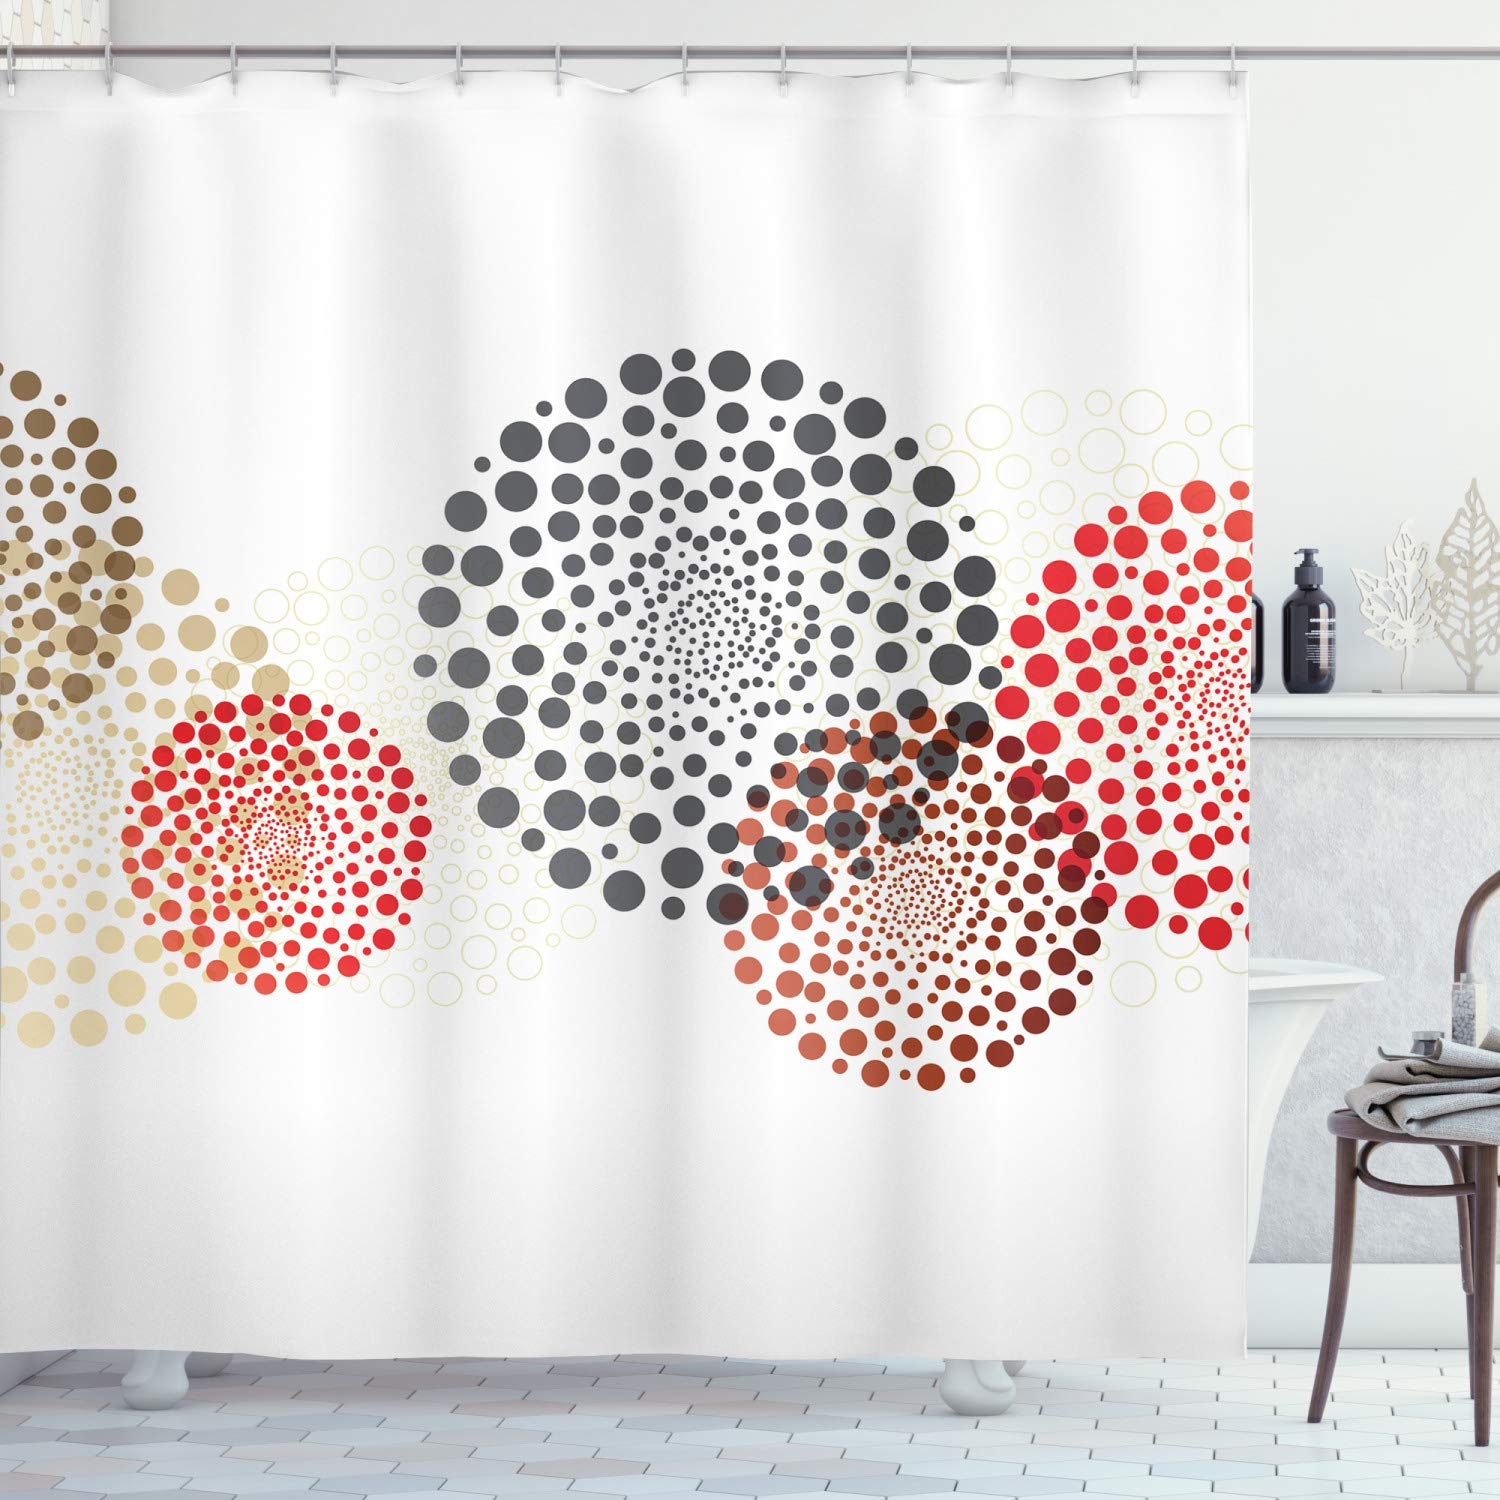 Ambesonne Abstract Decor Shower Curtain, Modern Cool Decoration with Dots Like and Circled Design Artwork, Fabric Bathroom Decor Set with Hooks, 84 Inches Extra Long, Red Grey